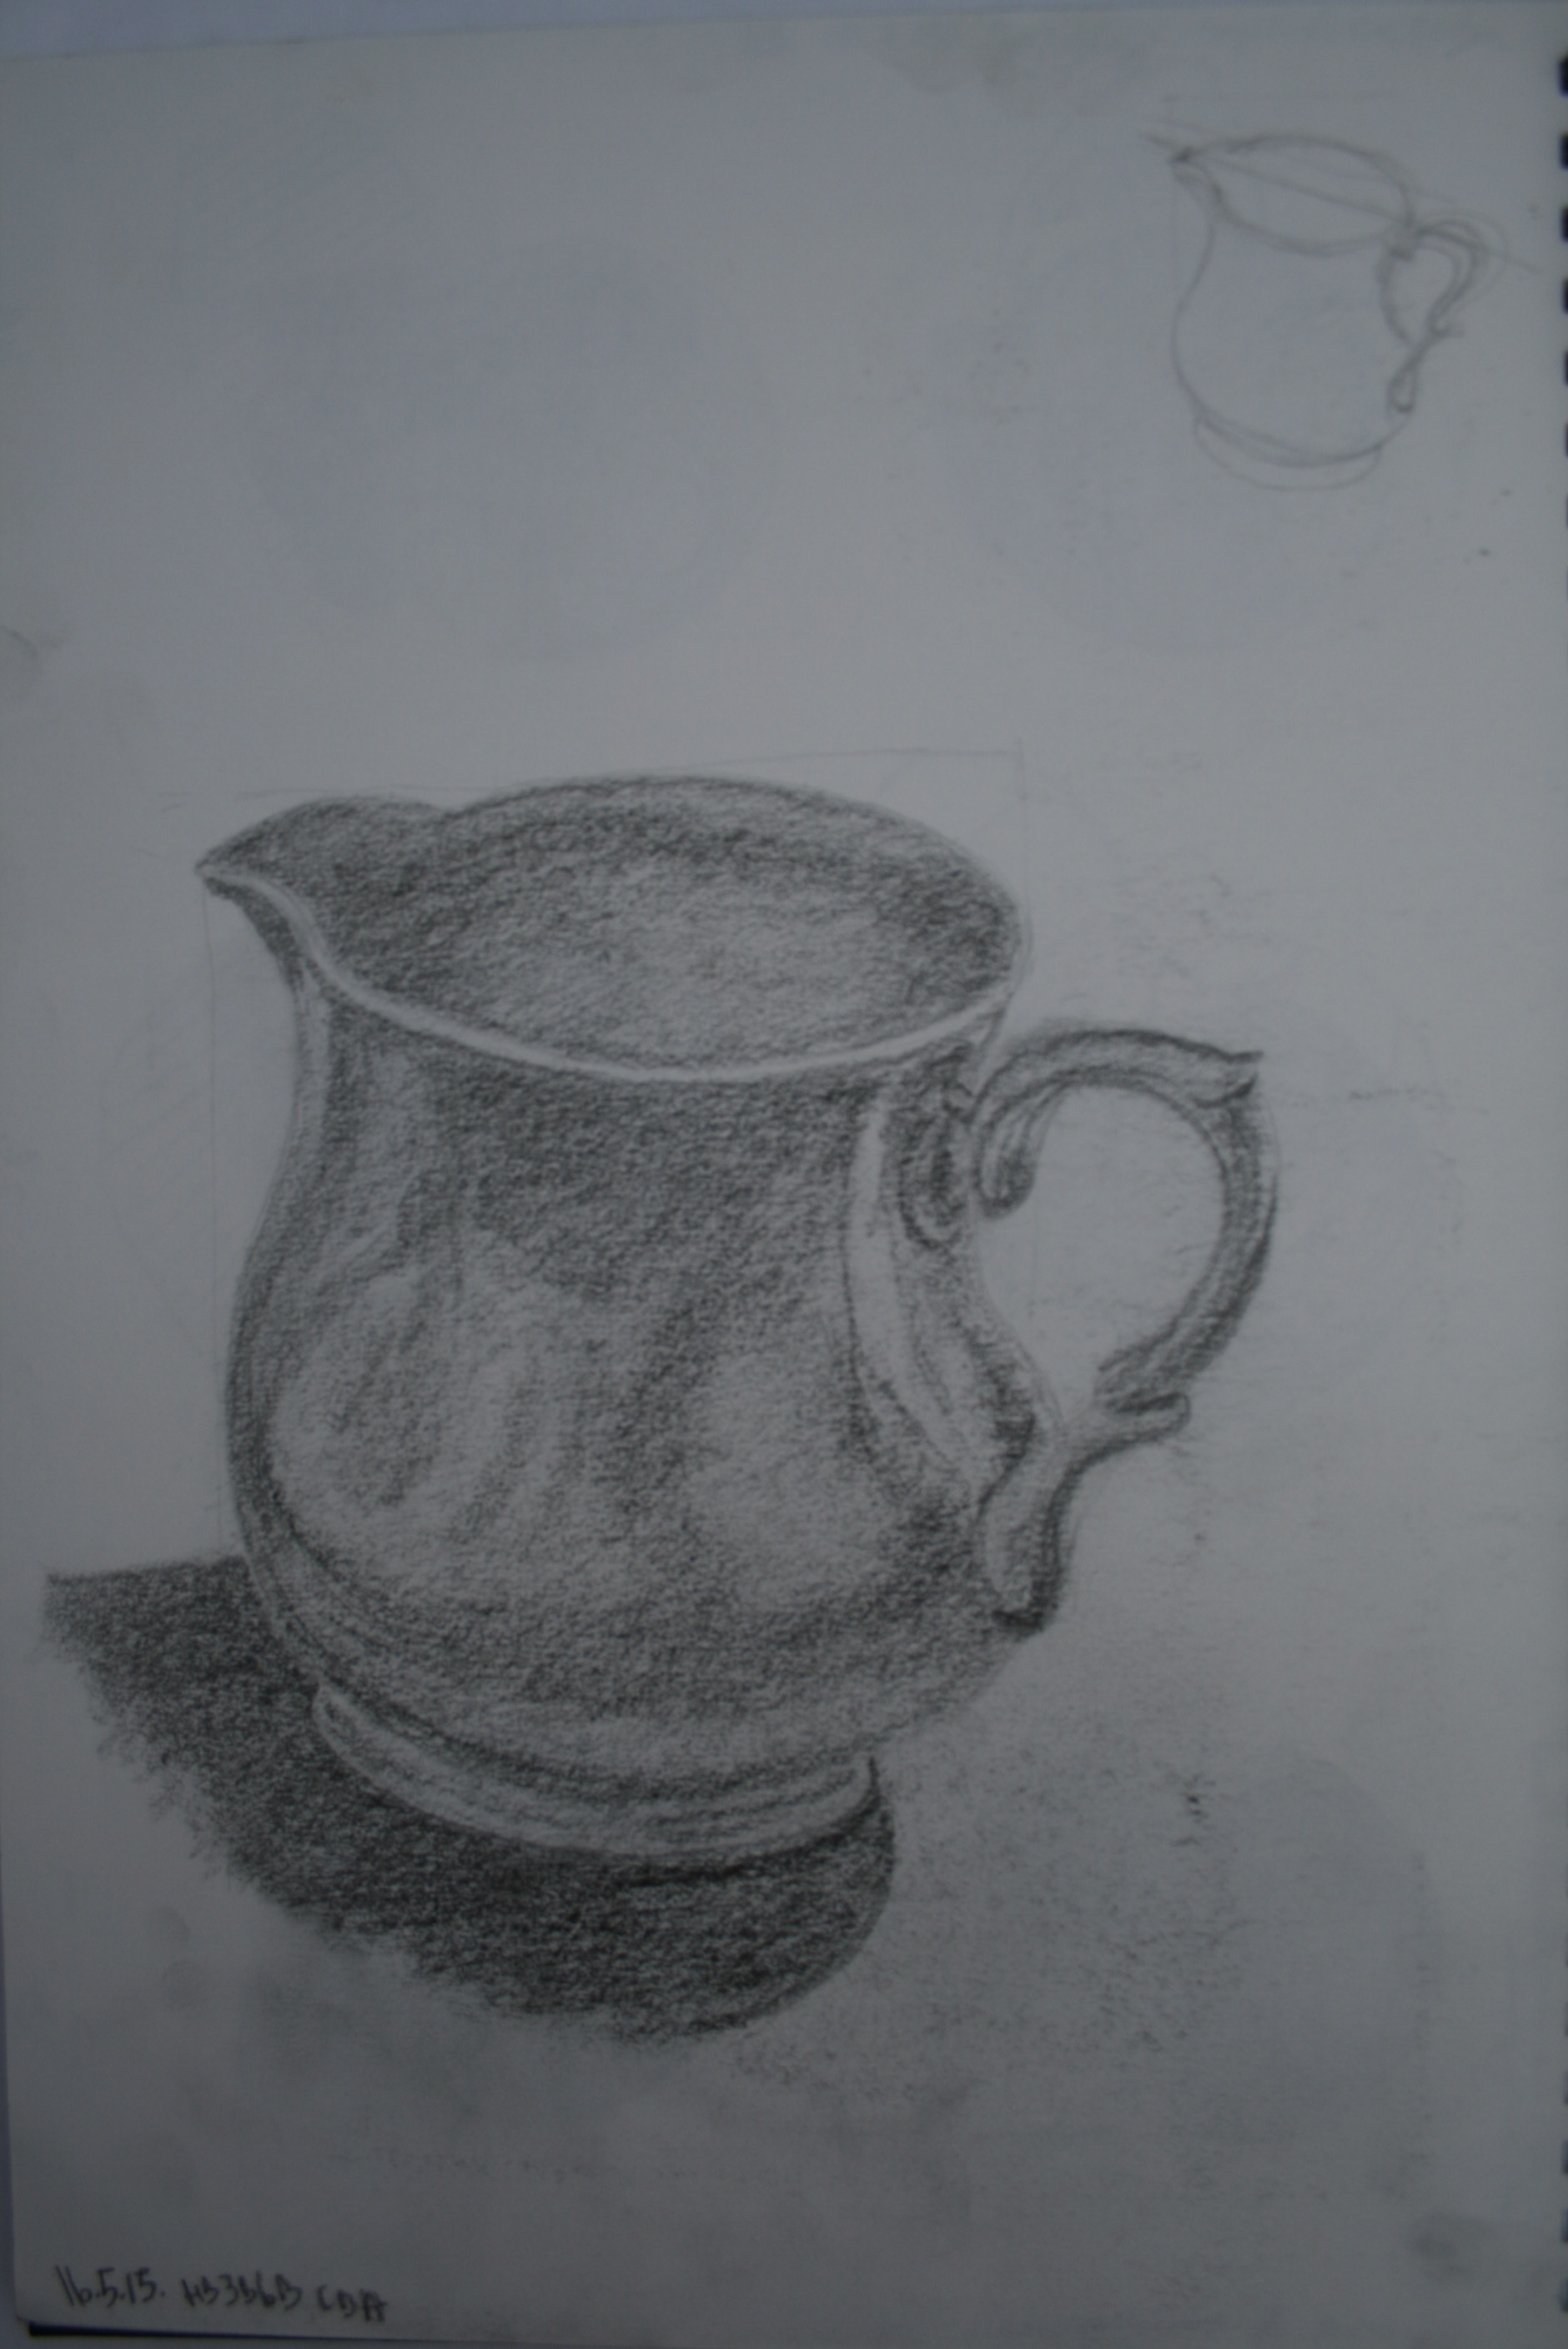 Jug hb 3b and 6b pencil 2a